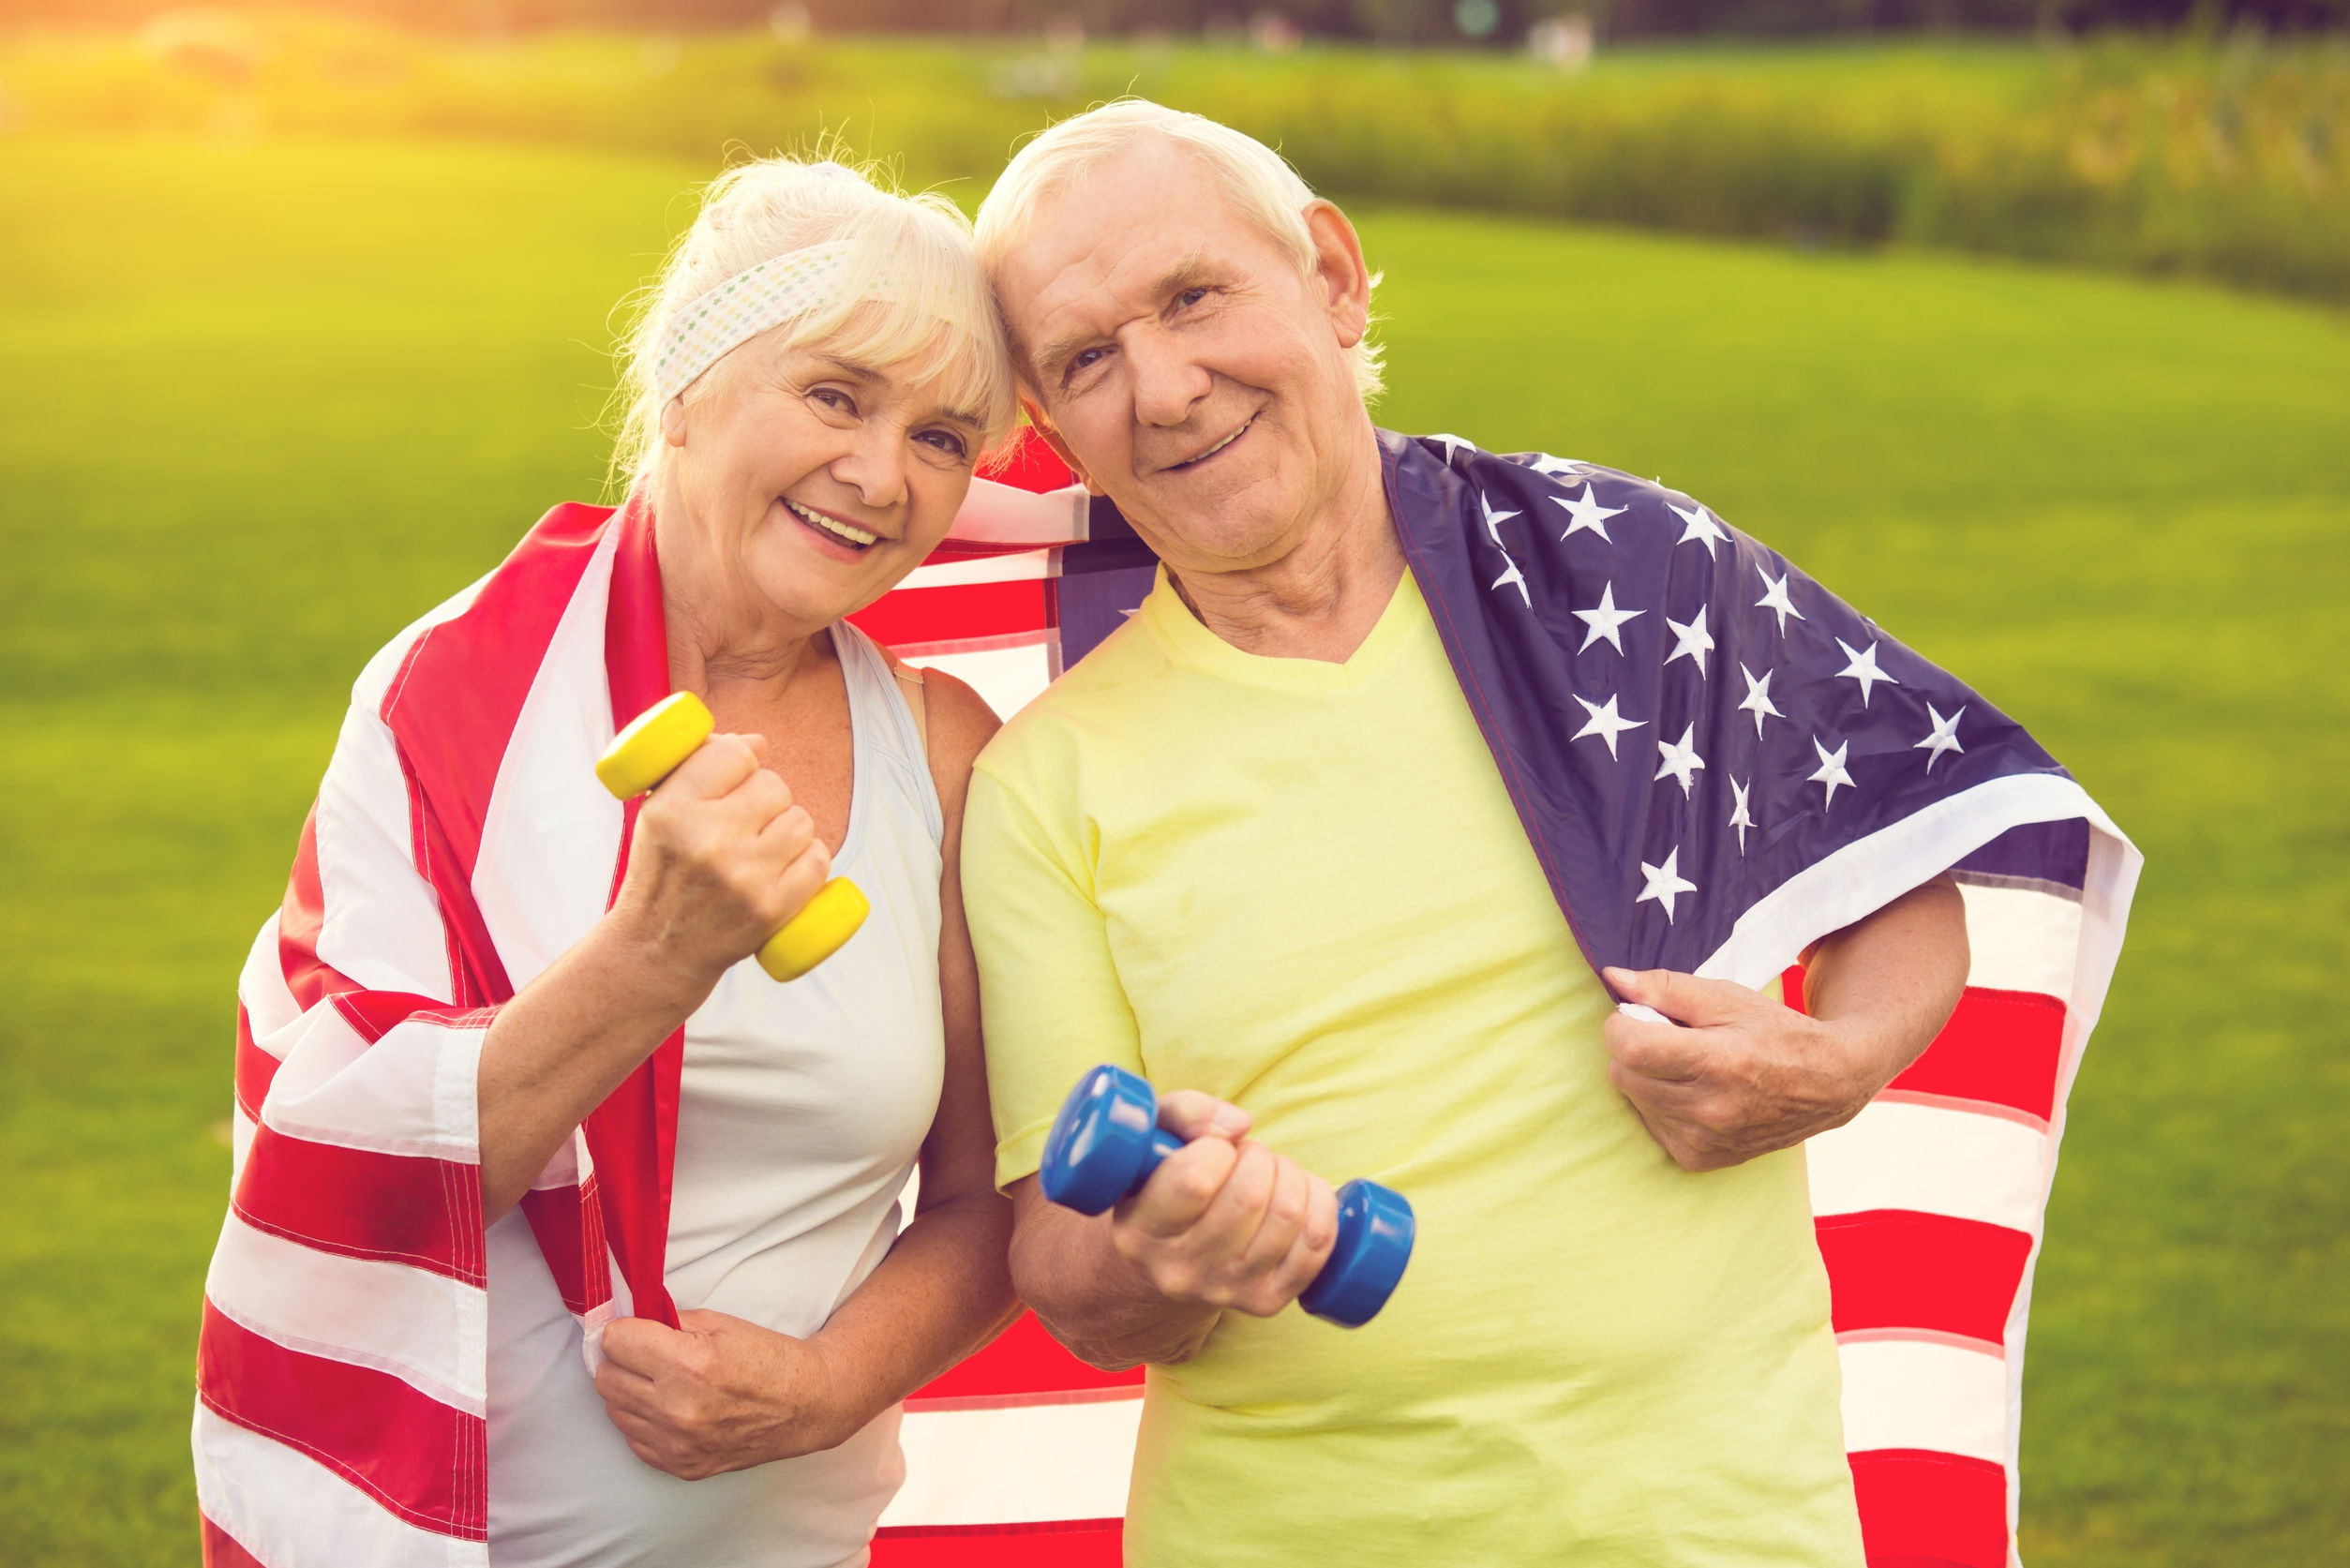 Where To Meet Seniors In Jacksonville Without Pay